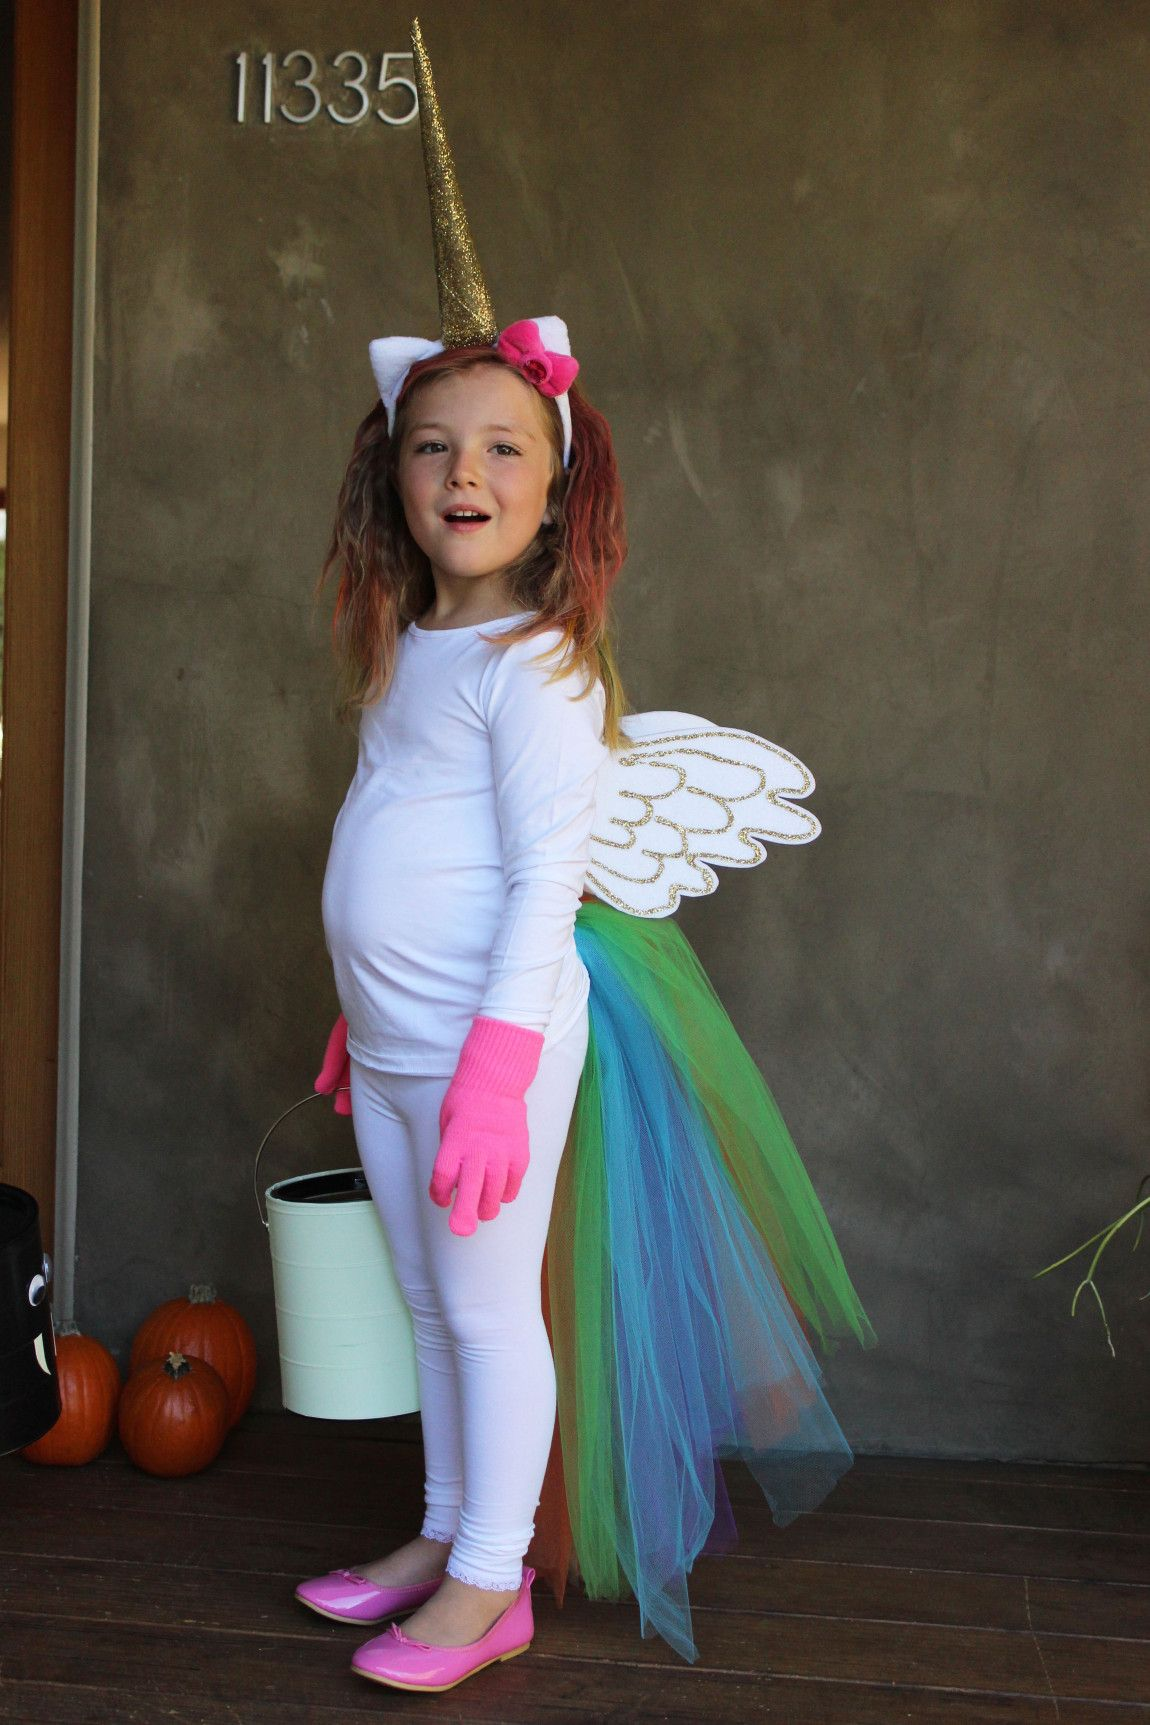 50 Best DIY Halloween Costumes For Kids in 2017 Diy